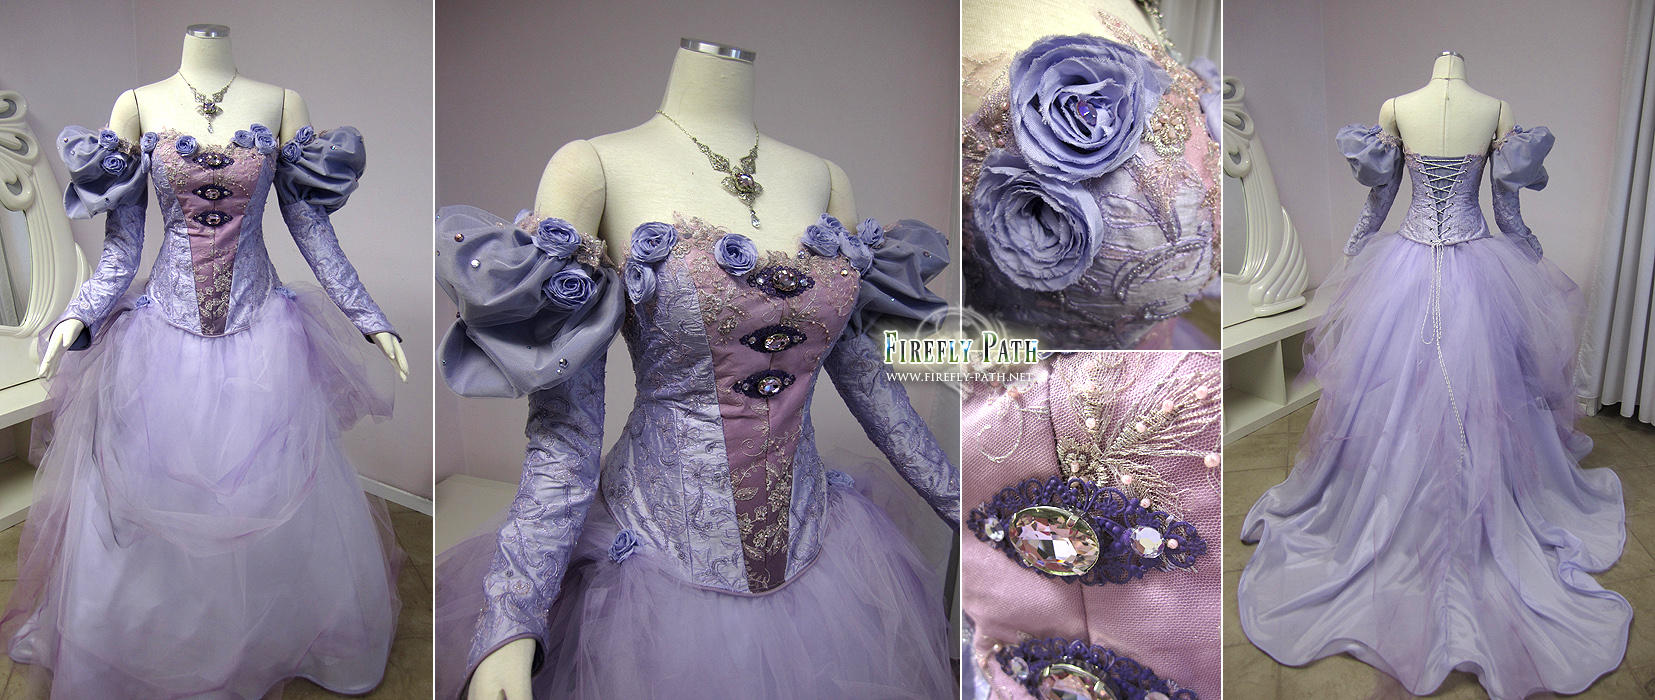 The Lady Amalthea Gown by Firefly-Path